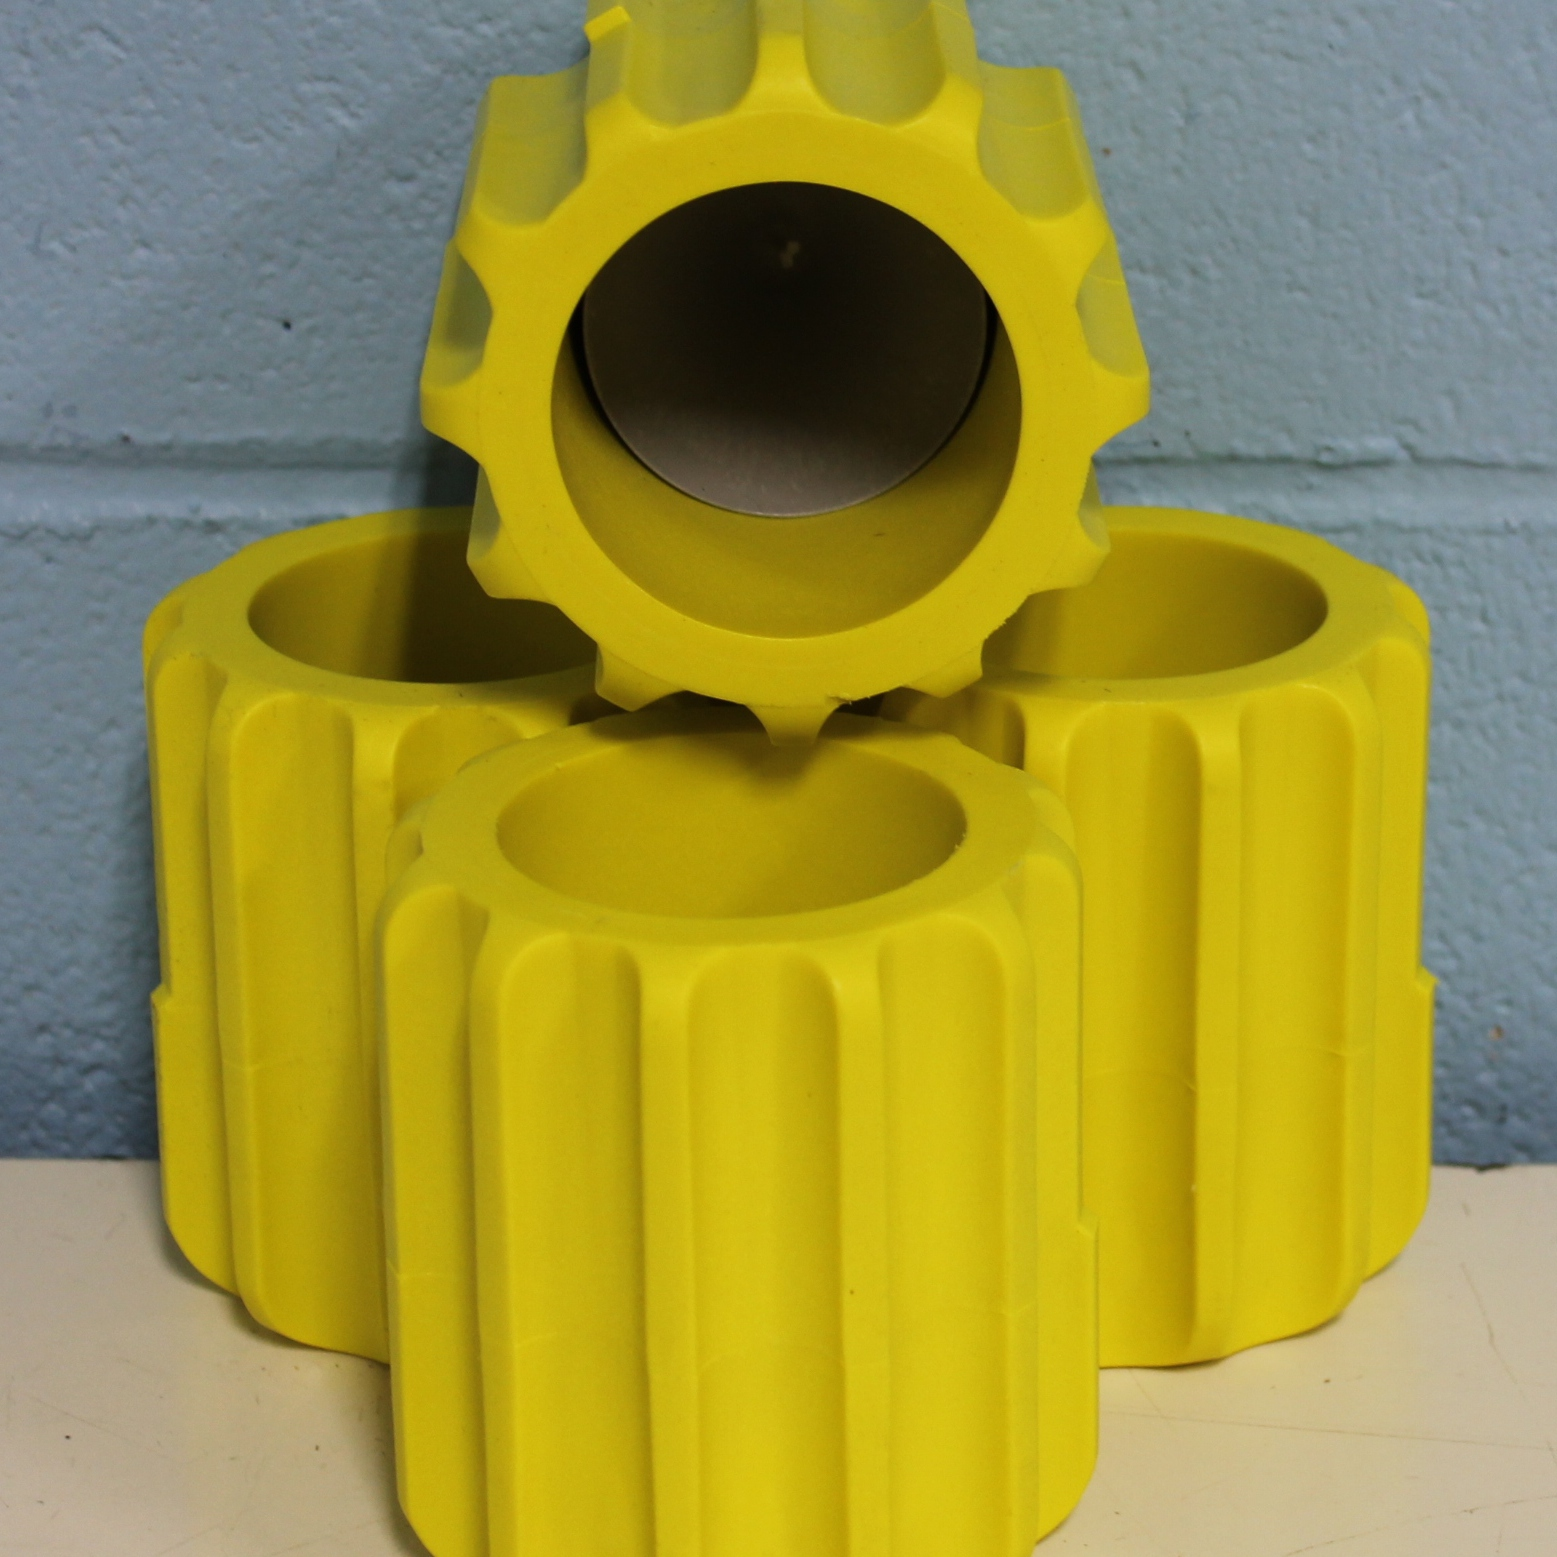 Beckman Coulter 250mL Yellow Rubber Bottle Sleeve P/N 349946 Image